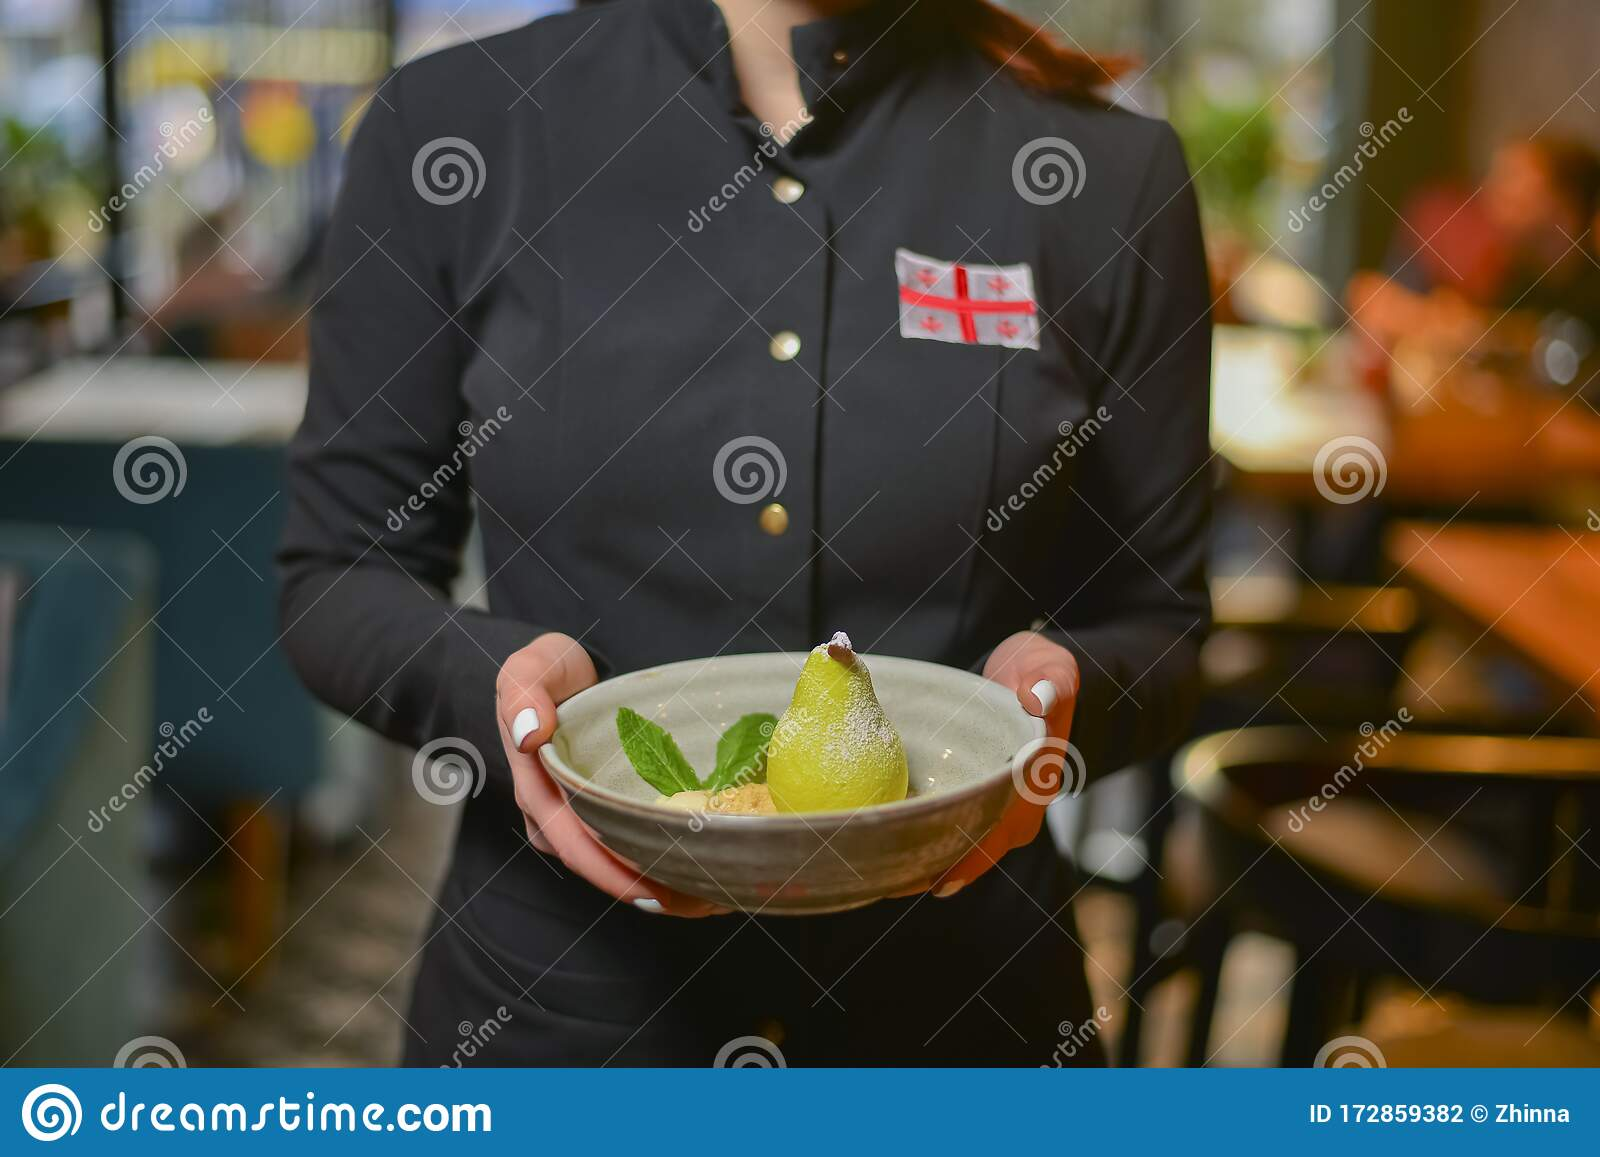 Waiter Serving Sweet Unique Dessert White Chocolate Pear Served In A Bowl In Restaurant Stock Photo Image Of Dishes Dessert 172859382